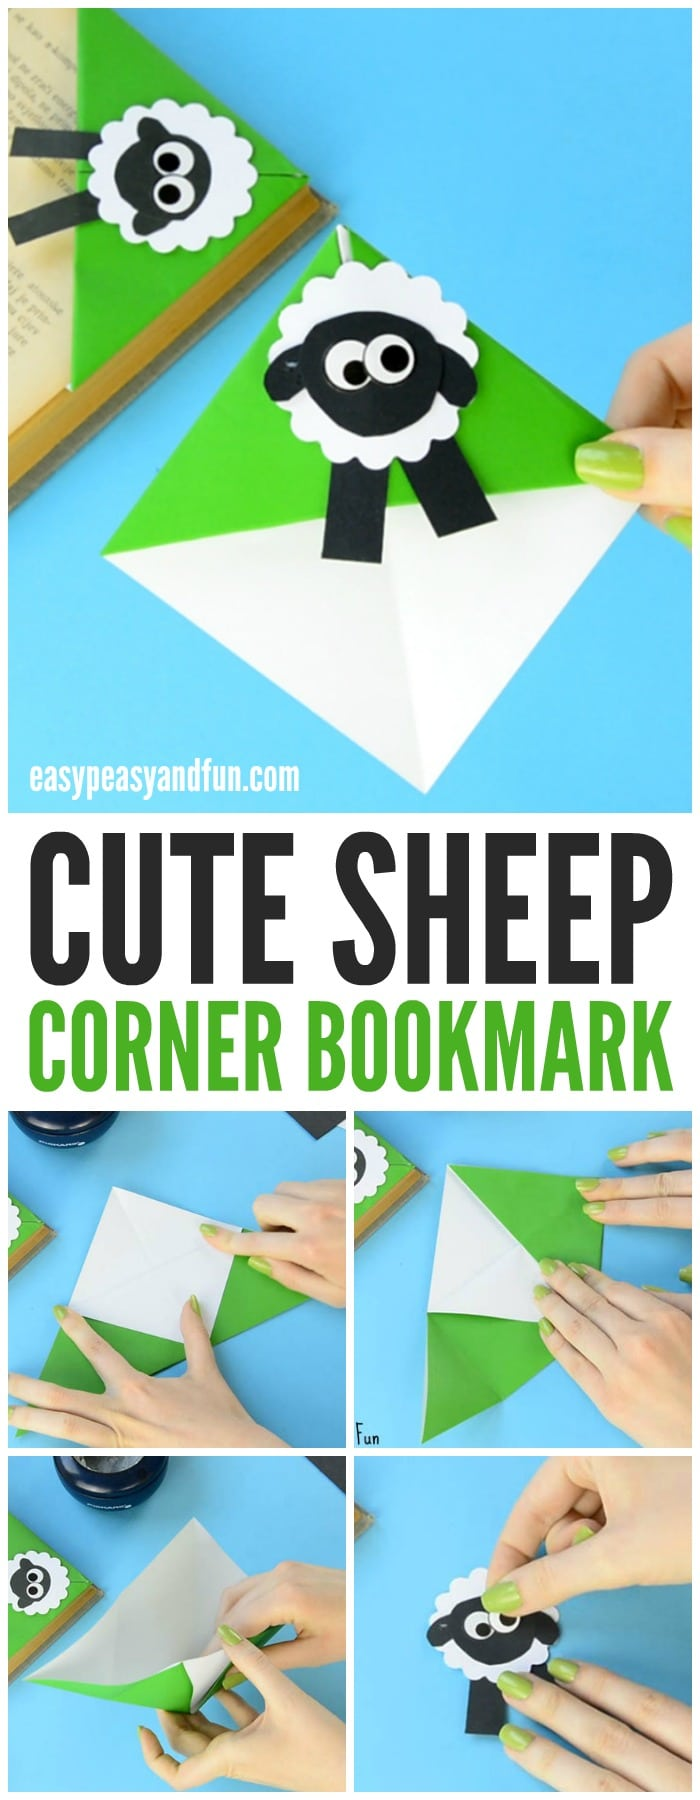 How To Make A Corner Bookmark : Sheep corner bookmark origami for kids easy peasy and fun